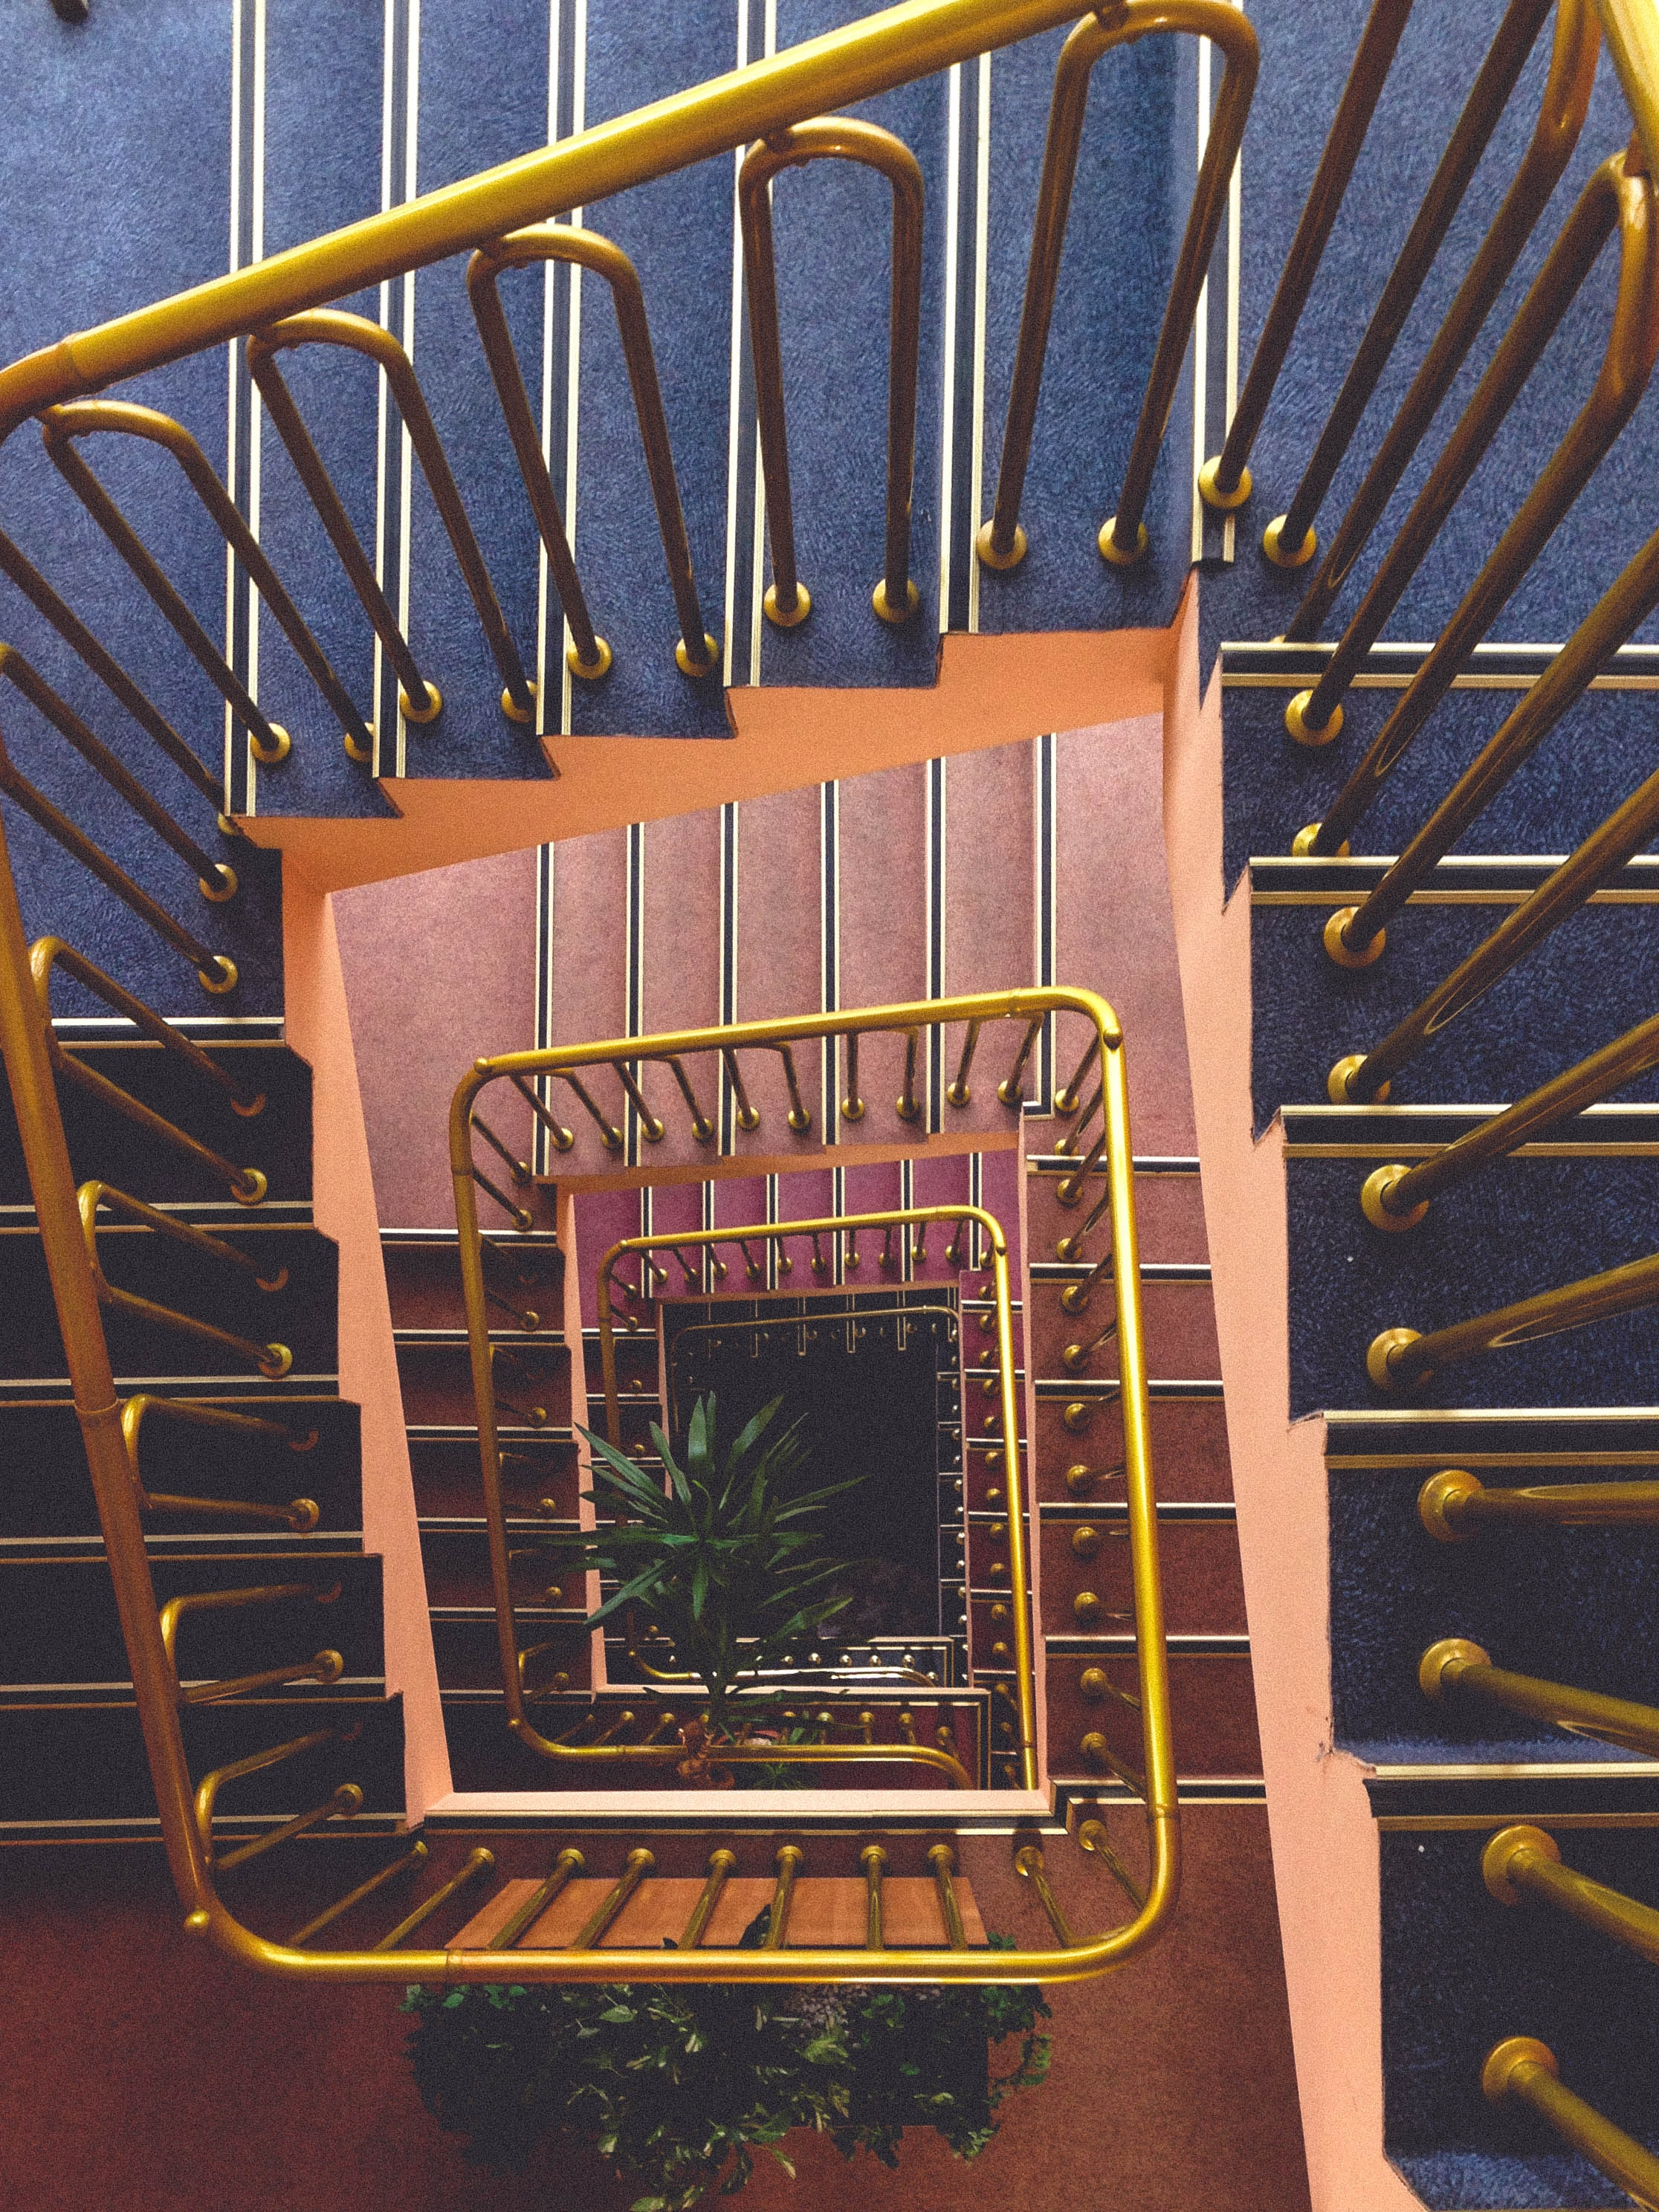 Looking down at a vintage spiral staircase with a gold banister